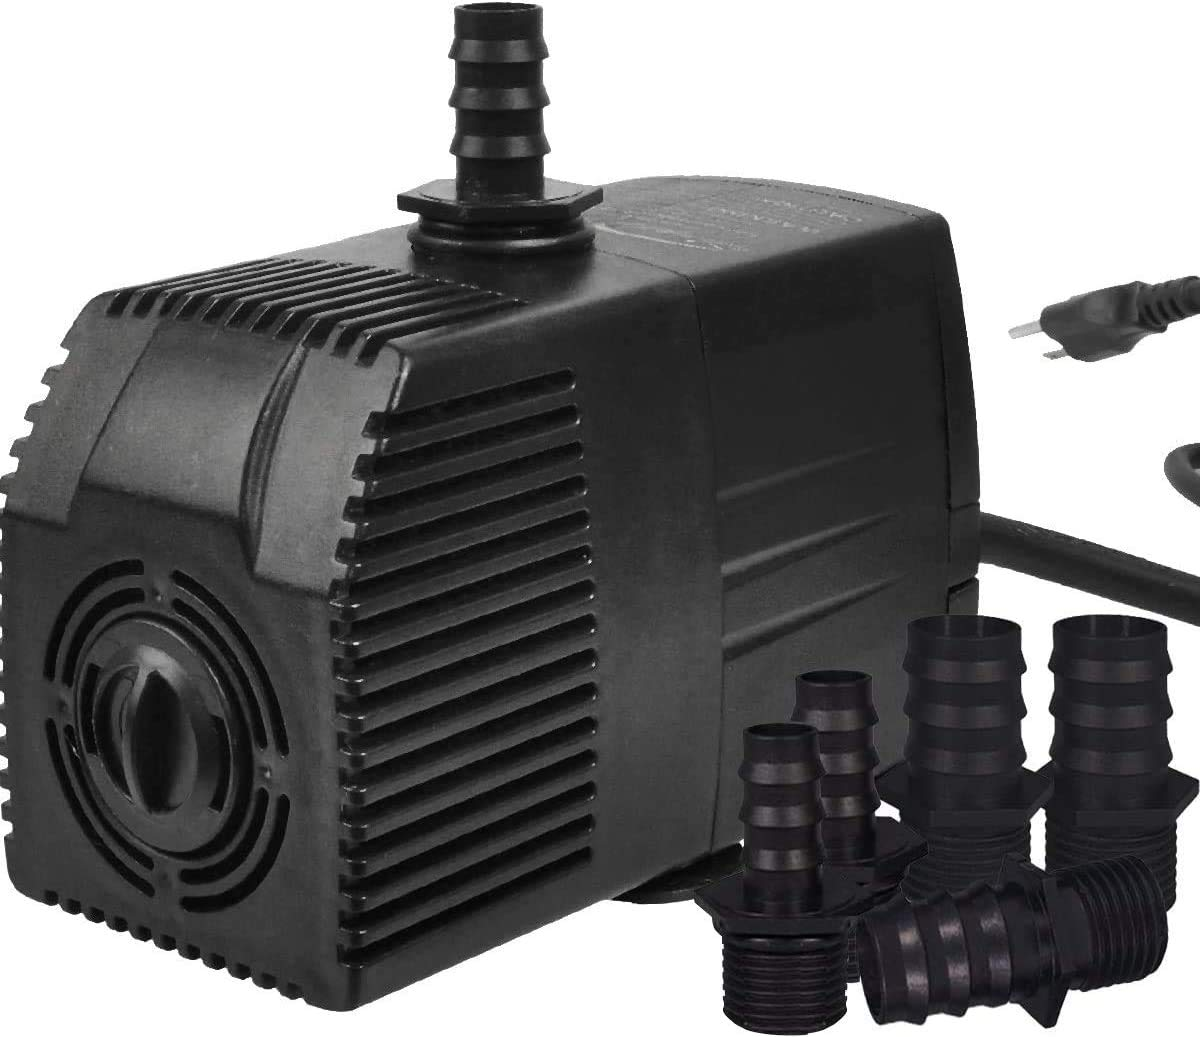 Simple Deluxe Submersible Water Pump for Fish Tank, Hydroponics, Aquaponics, Fountains, Ponds, Statuary, Aquariums & Inline, Black